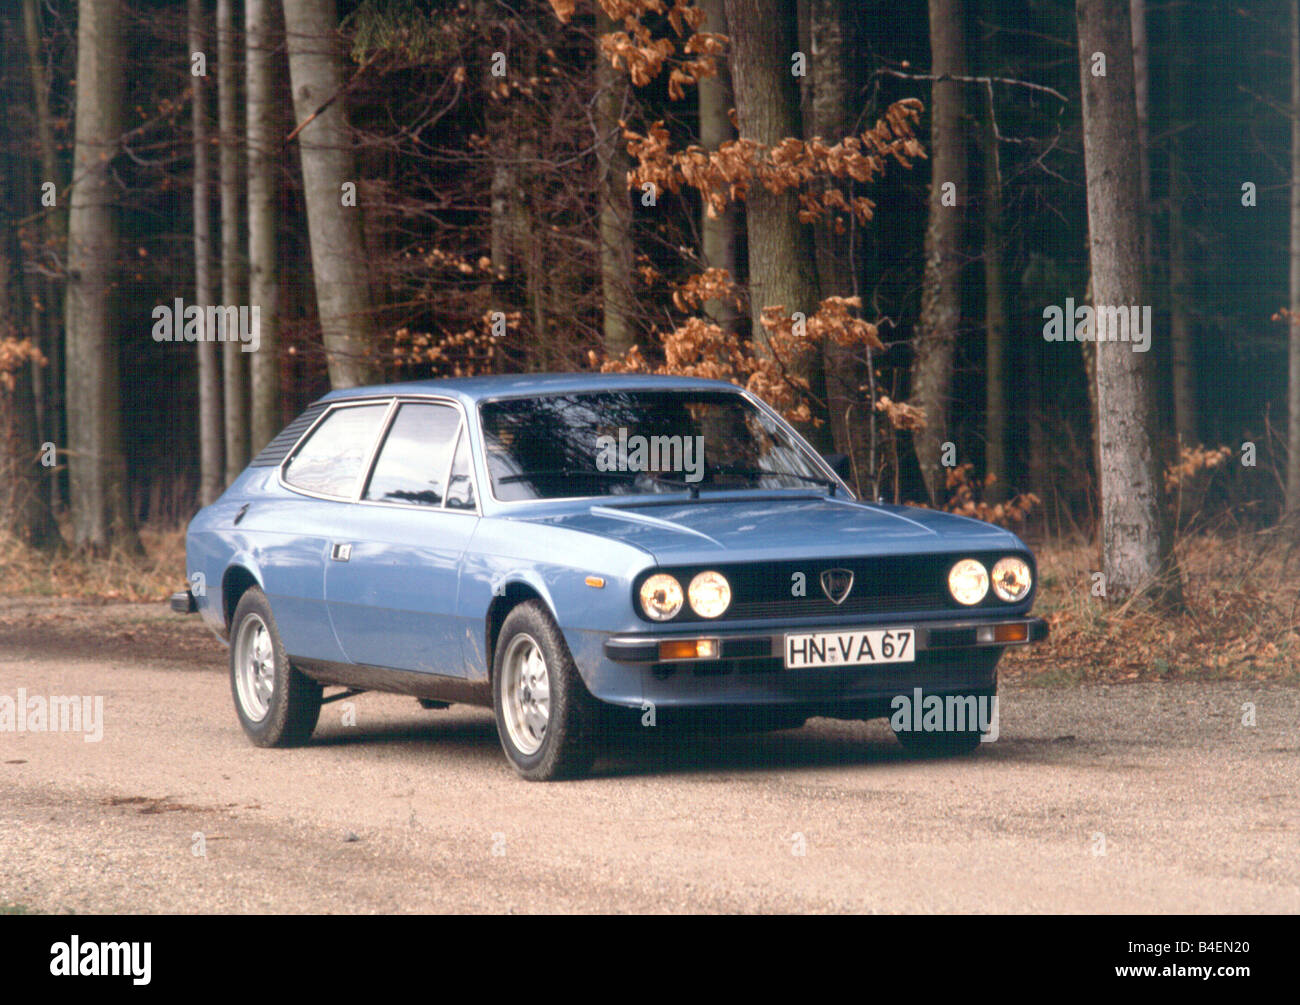 1975 lancia beta hpe images hd cars wallpaper 1975 lancia beta hpe images hd cars wallpaper 1975 lancia beta hpe image collections hd cars vanachro Images